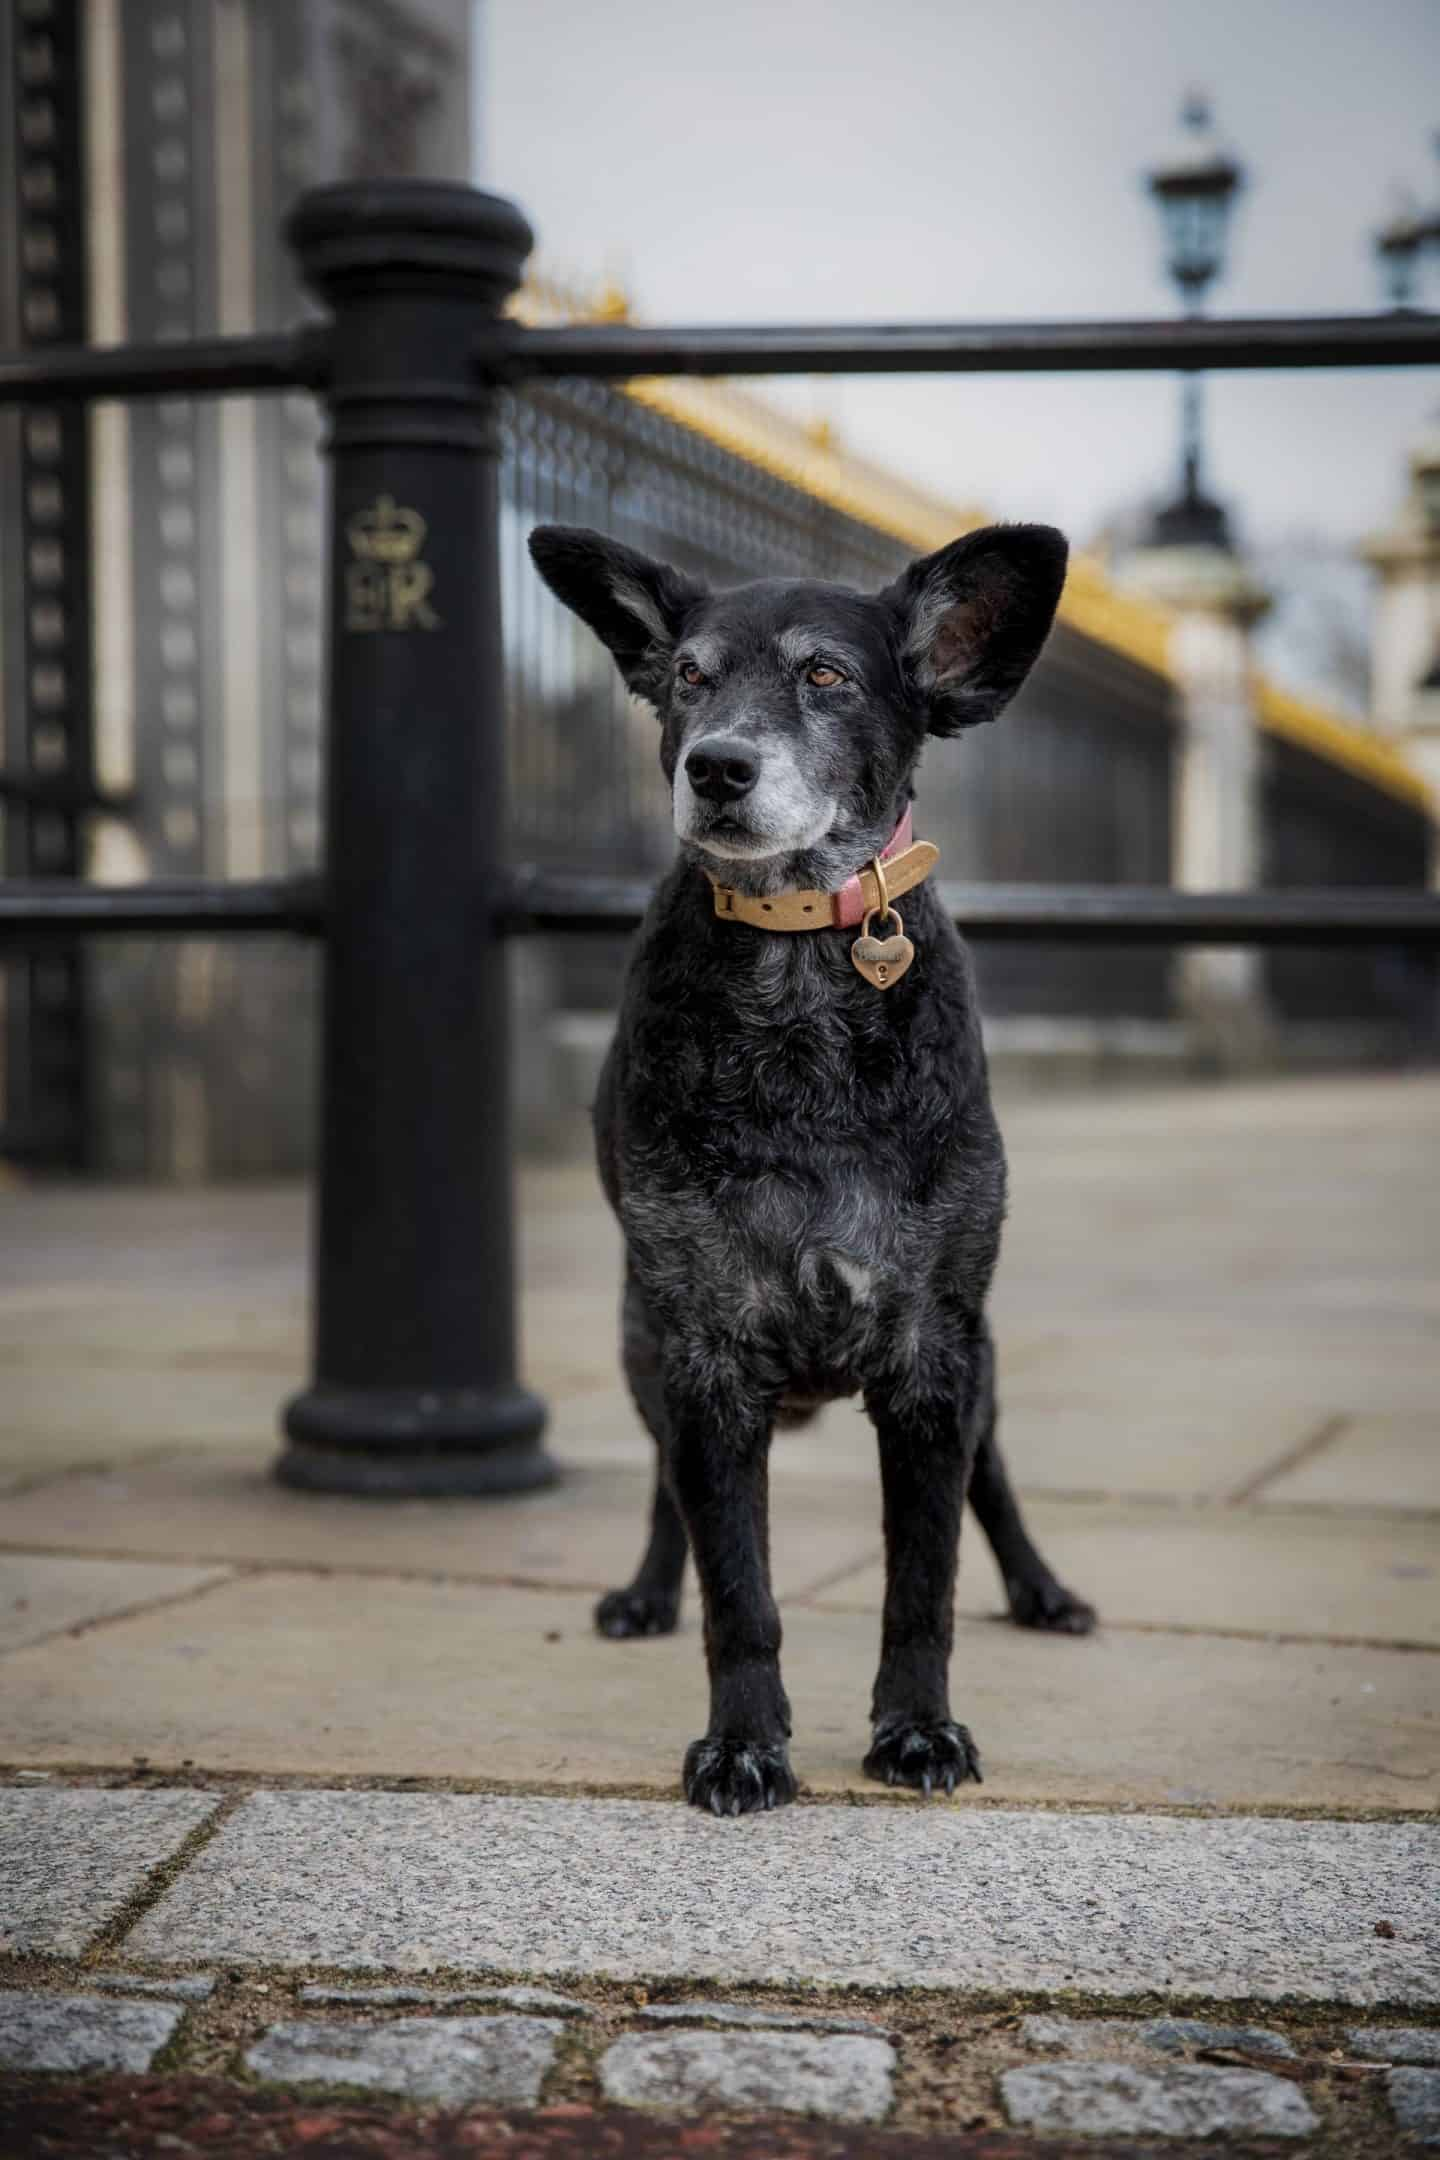 Belinha in front of Buckingham Palace - by Raven Imagery